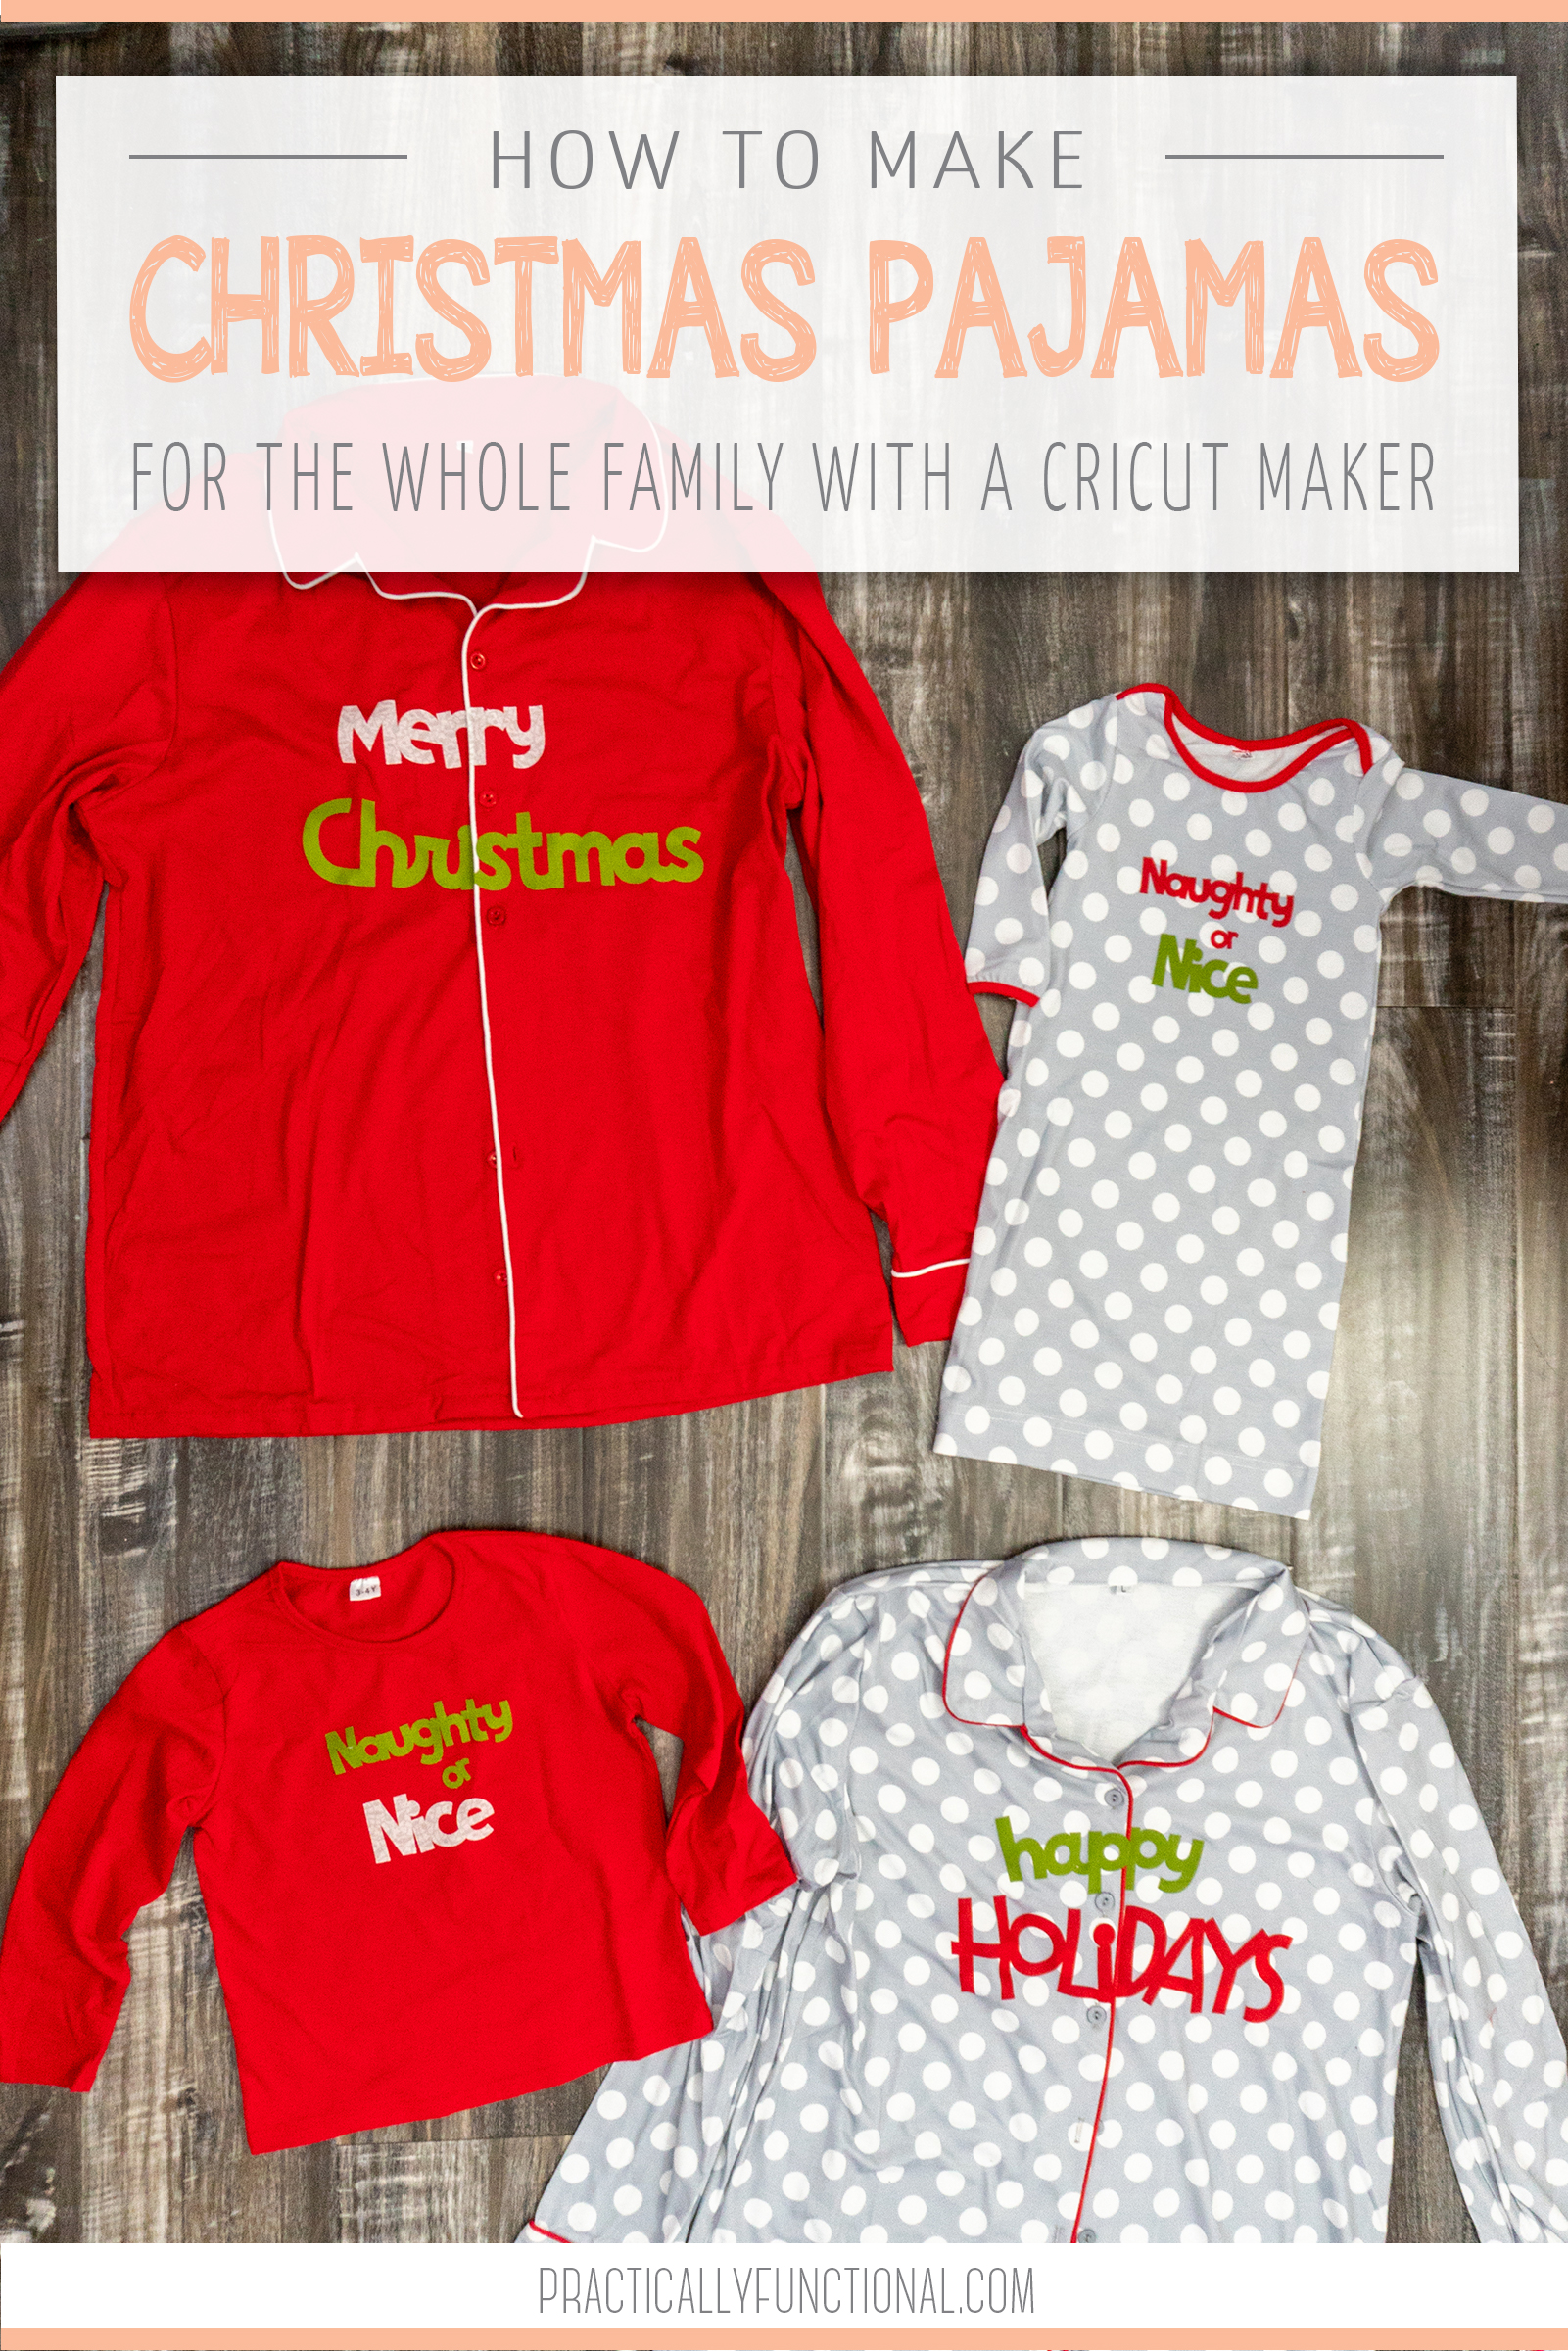 Matching family Christmas pajamas are super popular (and very cute!)! This year I decided to DIY them and love how they turned out! Here's how to make DIY matching family Christmas pajamas!